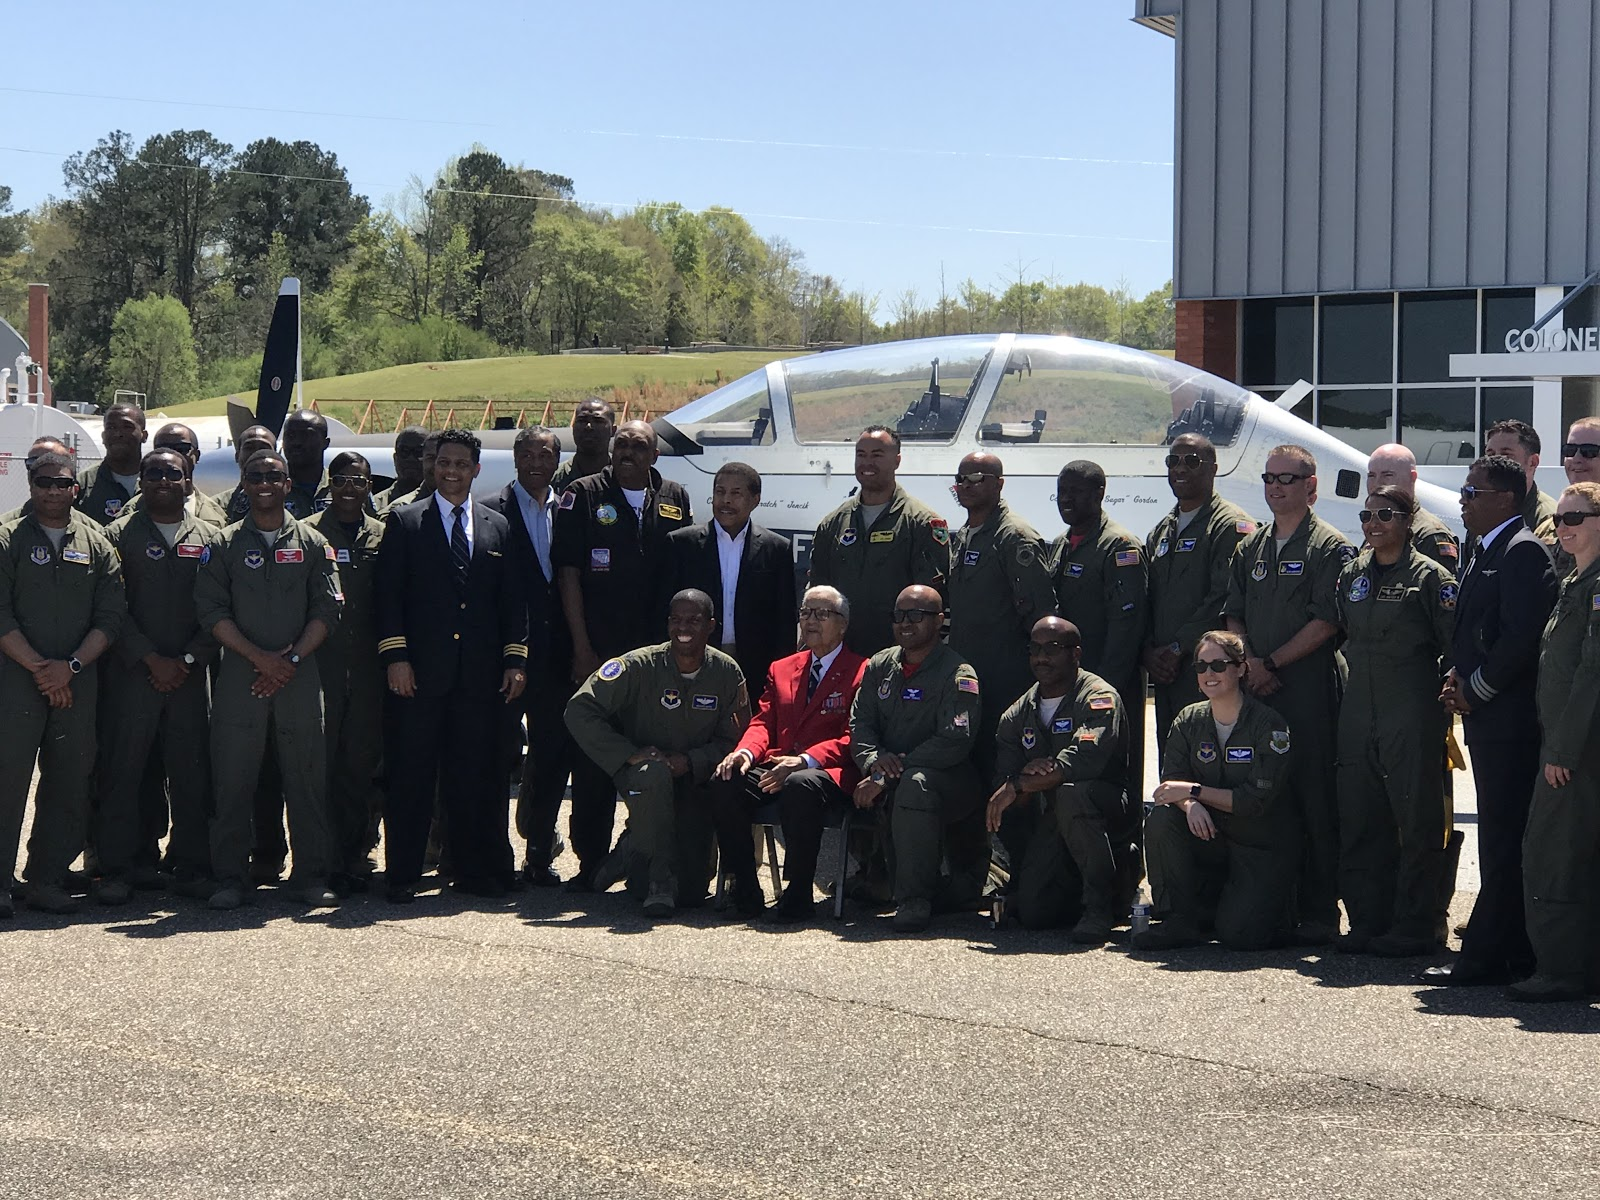 The March 2019 event in Tuskegee, AL doubled as a reunion for black military aviators.